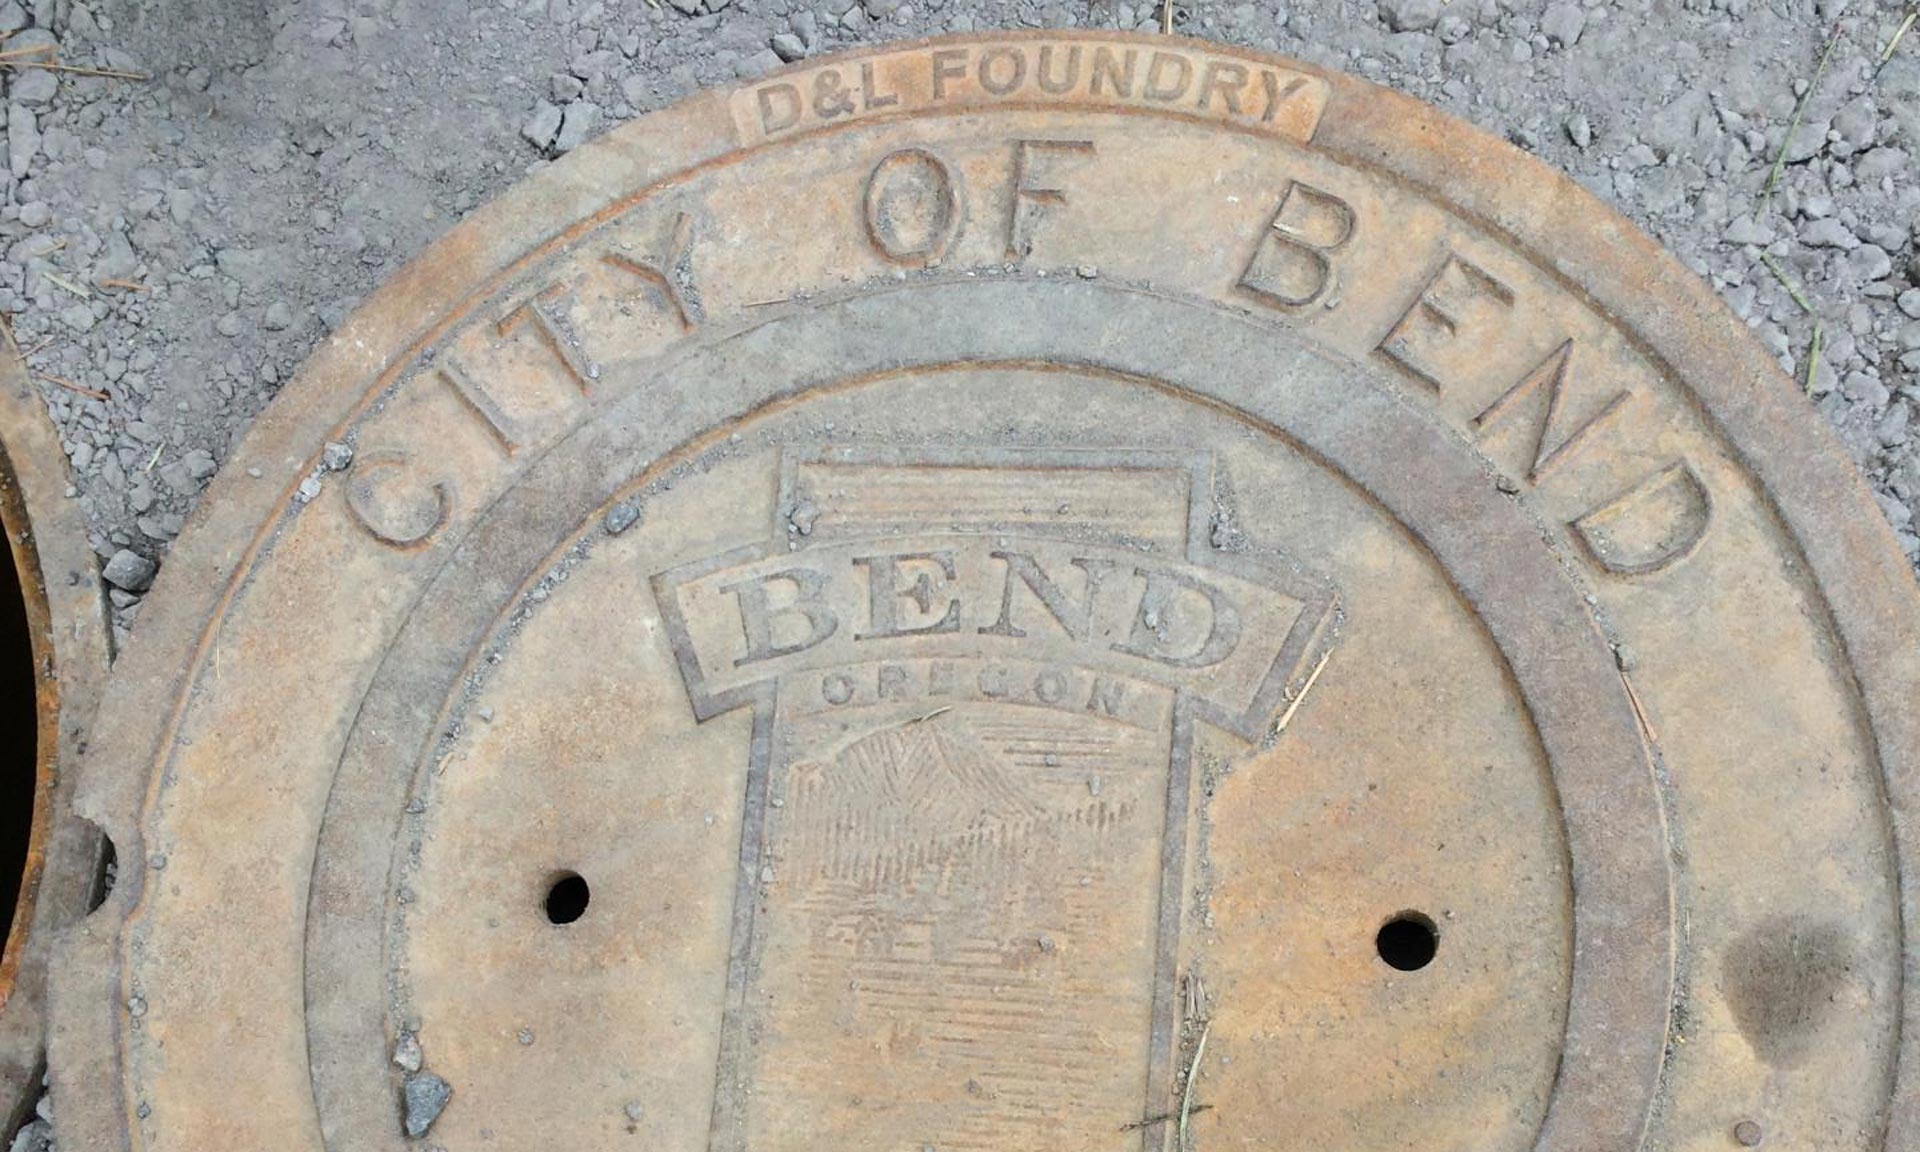 City of Bend manhole cover